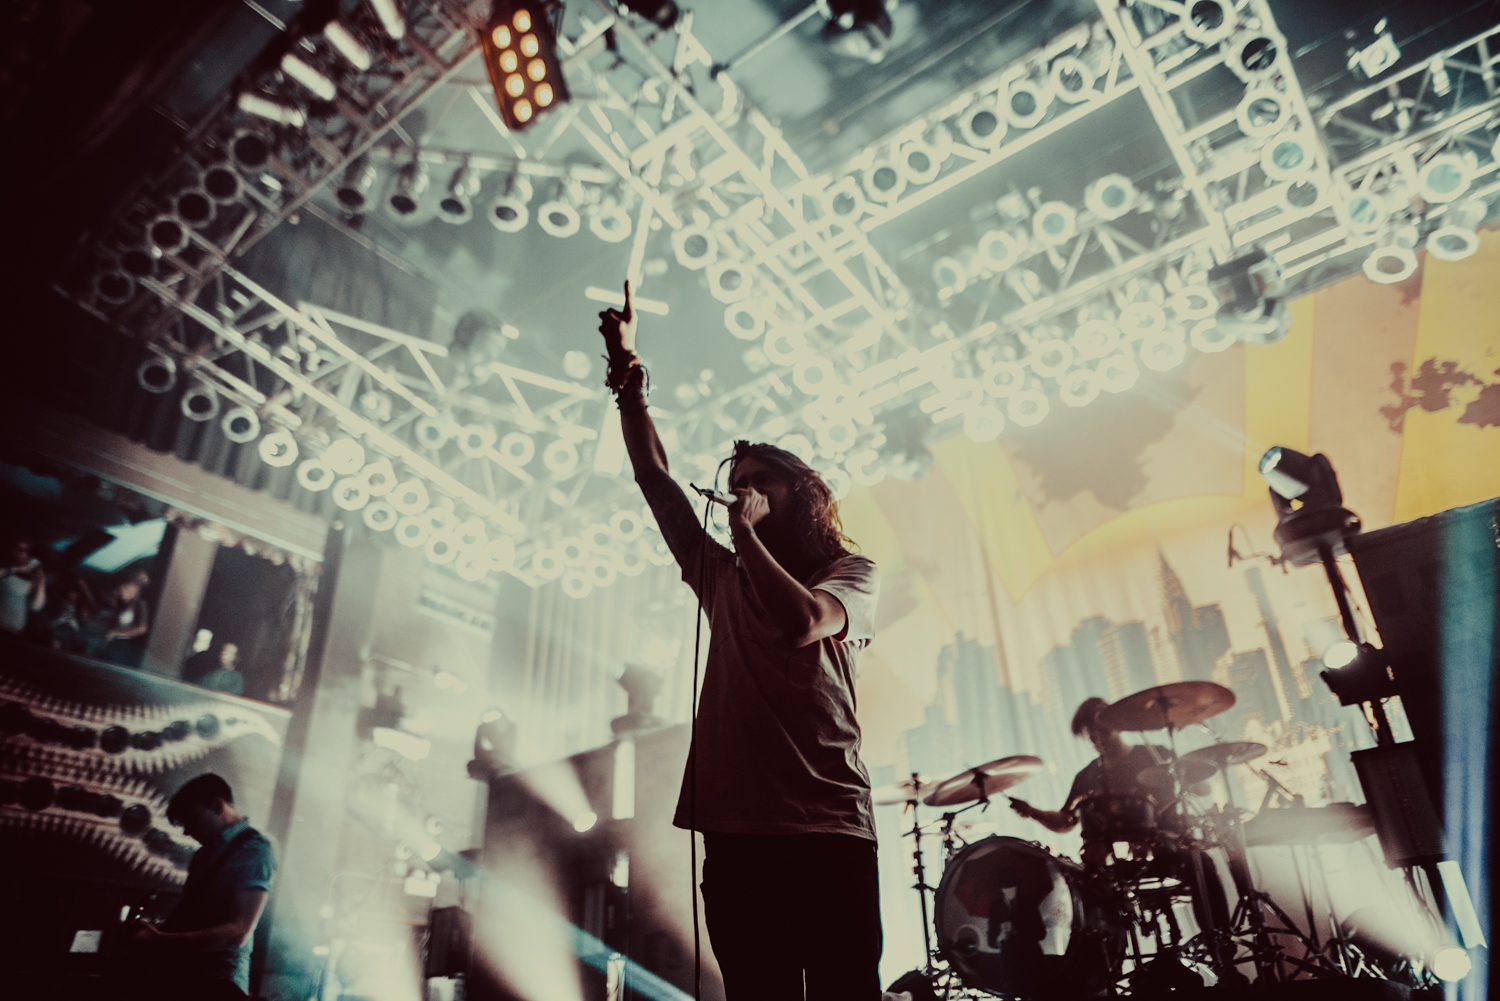 PHOTOS: Mayday Parade celebrate 10 years of 'A Lesson In Romantics'